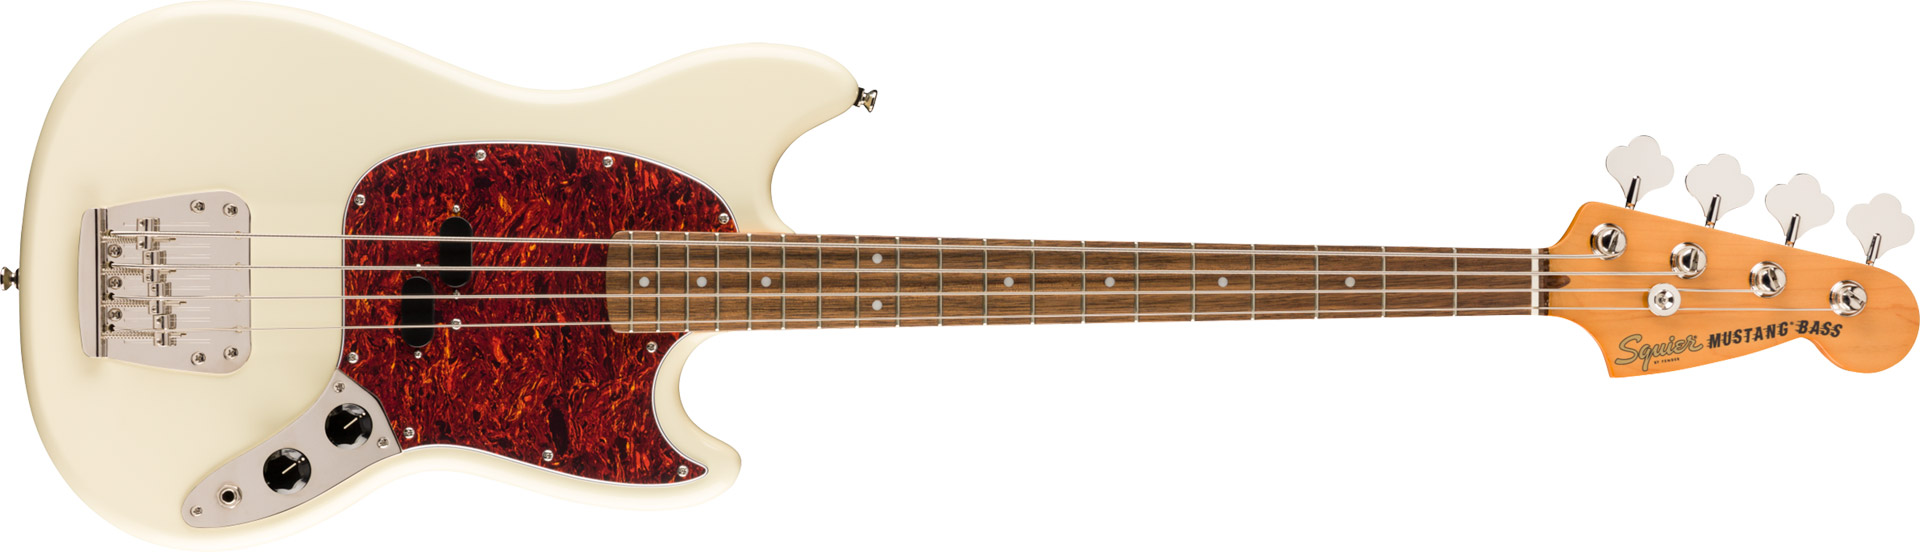 CONTRABAIXO FENDER SQUIER CLASSIC VIBE 60S MUSTANG BASS LR - 037-4570-505 - OLYMPIC WHITE